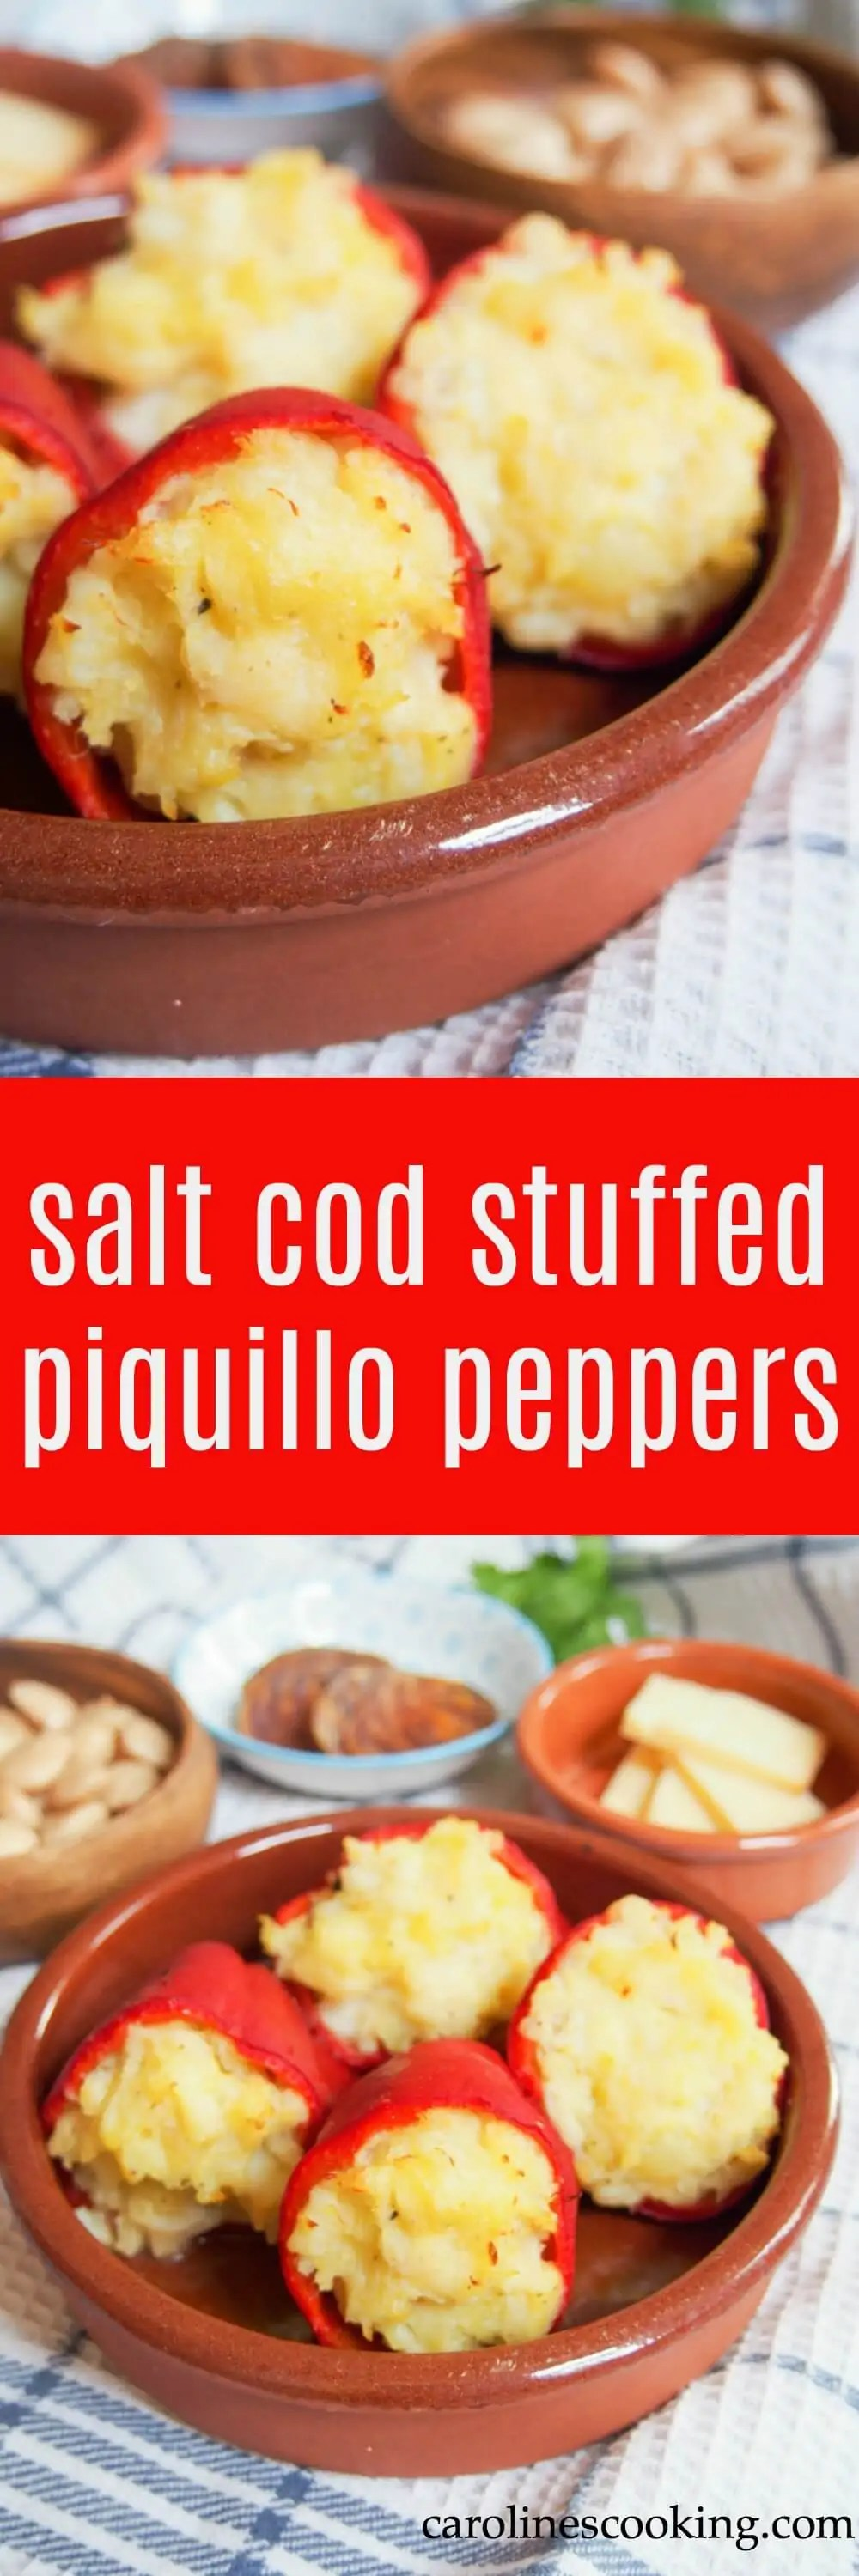 Salt cod stuffed piquillo peppers are comfort food in tapas form - the potato and salt cod filling is smooth and packed with flavor. They make a great appetizer or serve as part of a tapas meal.